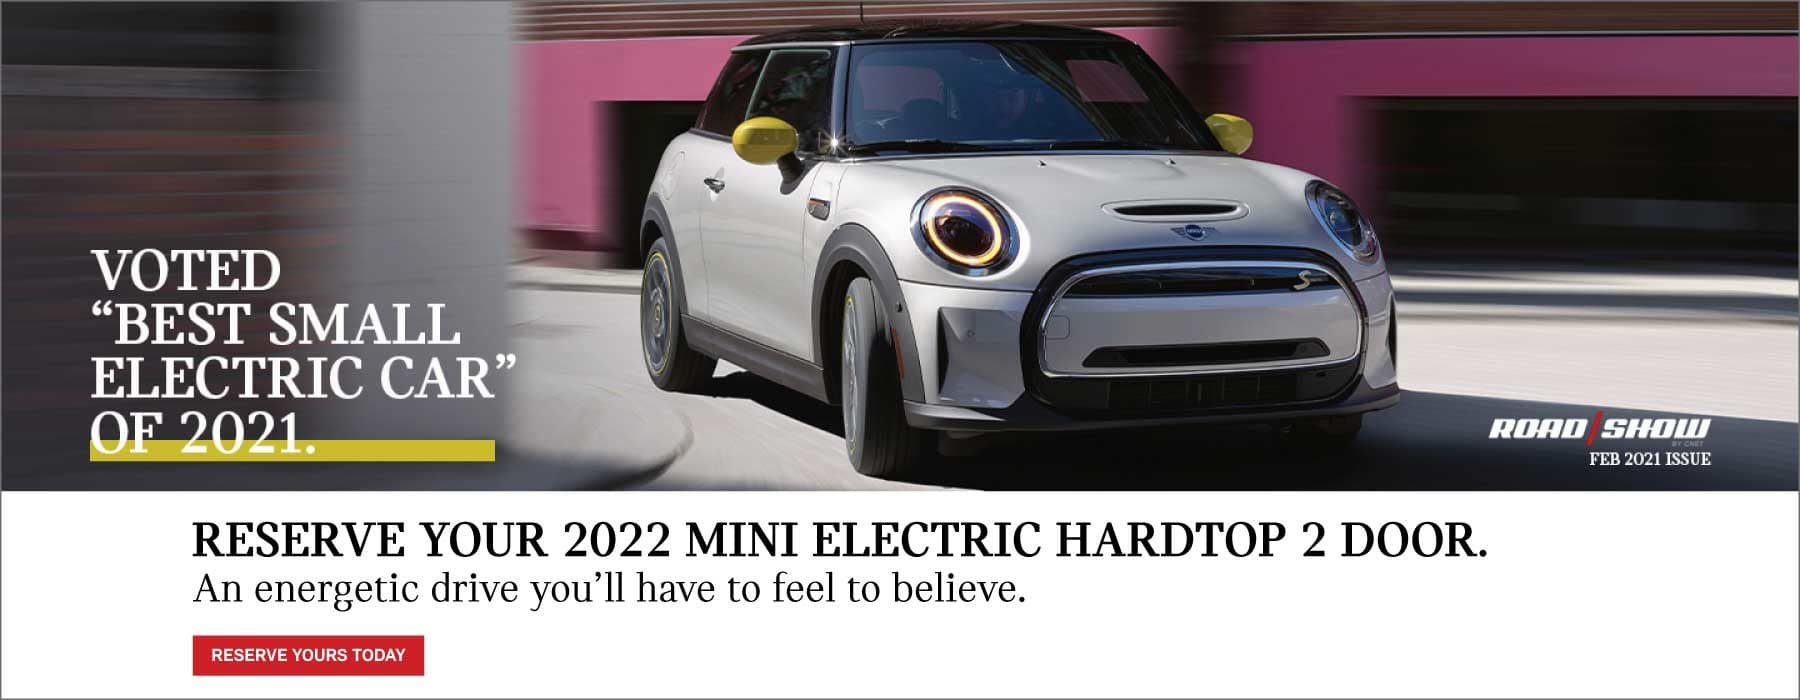 Reserve Your 2022 MINI Electric Hardtop 2 Door. An energetic drive that you'll have to feel to believe.